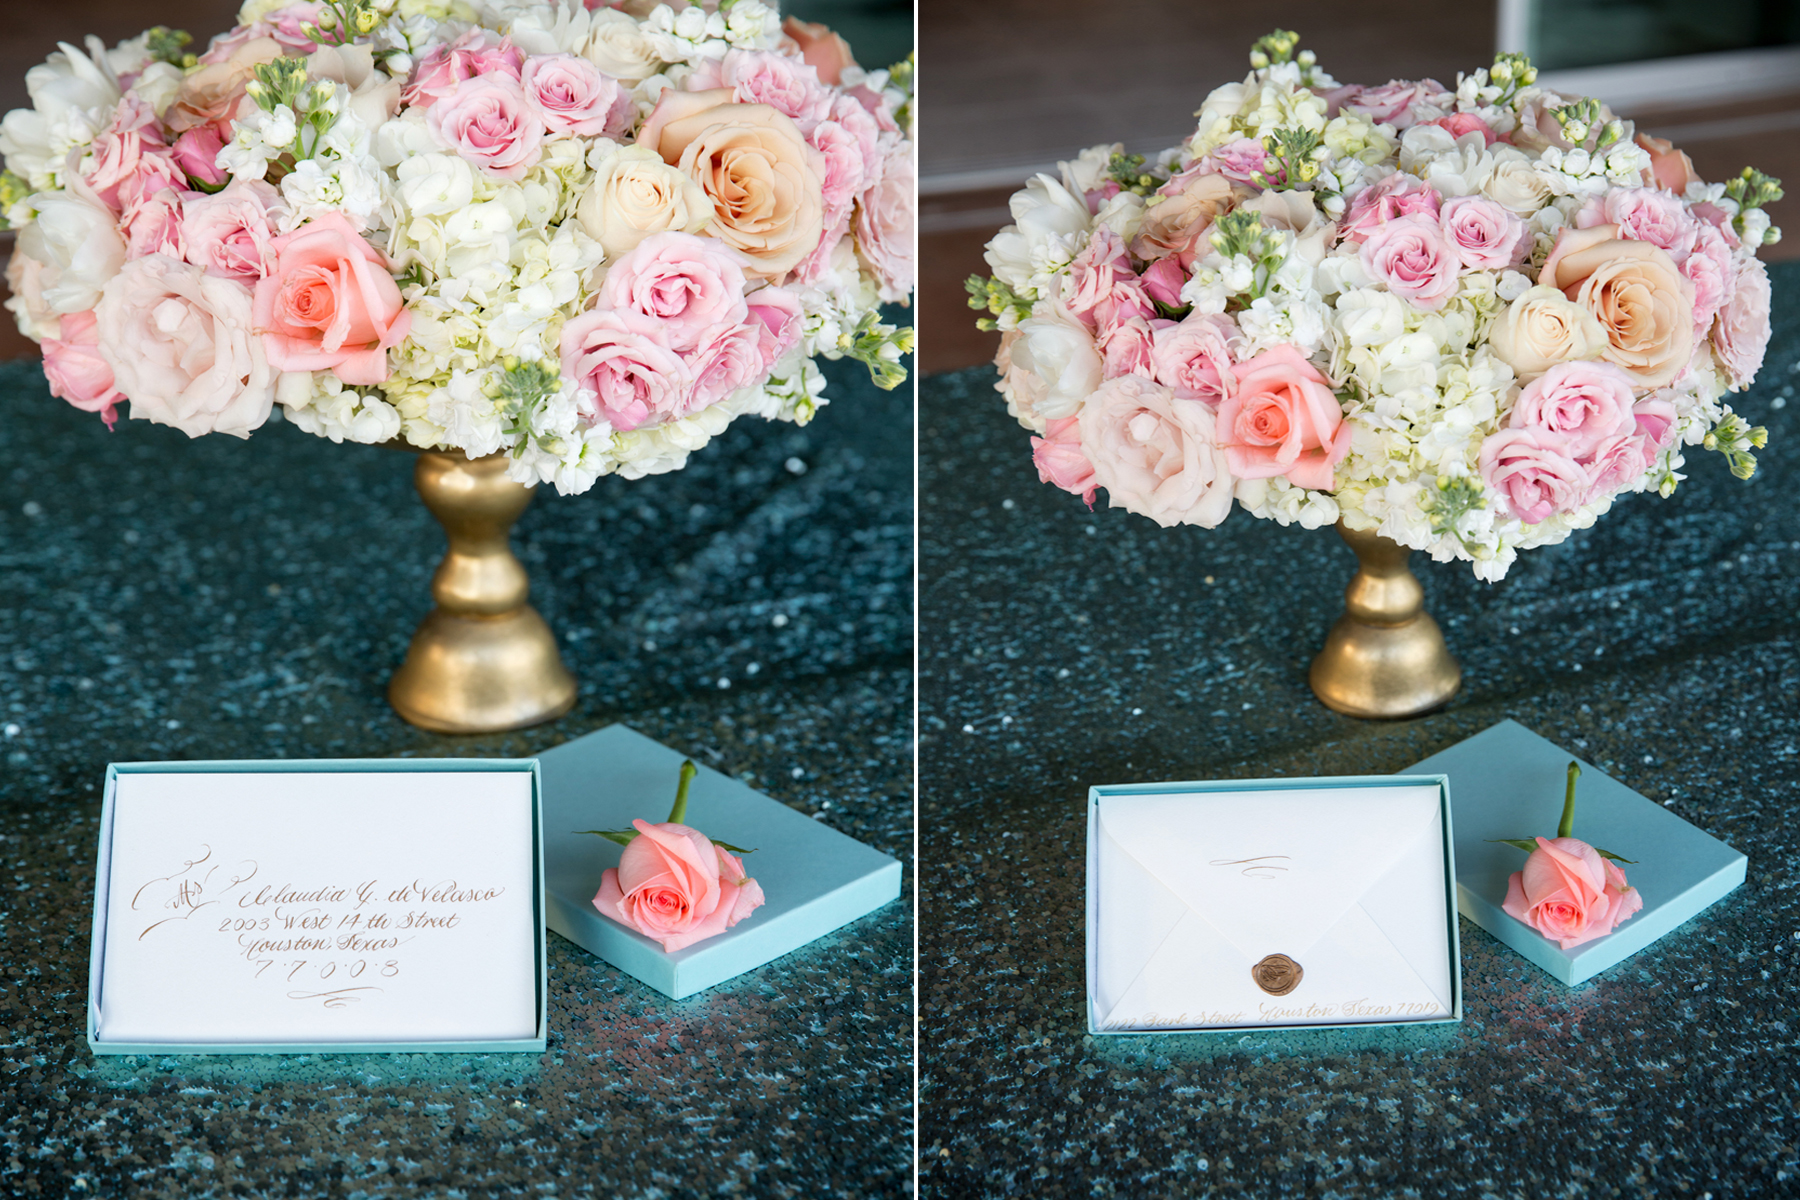 daytoremember.net |D. Jones Photography | Wedding Stationery | A Day To Remember Houston Wedding Planning and Design